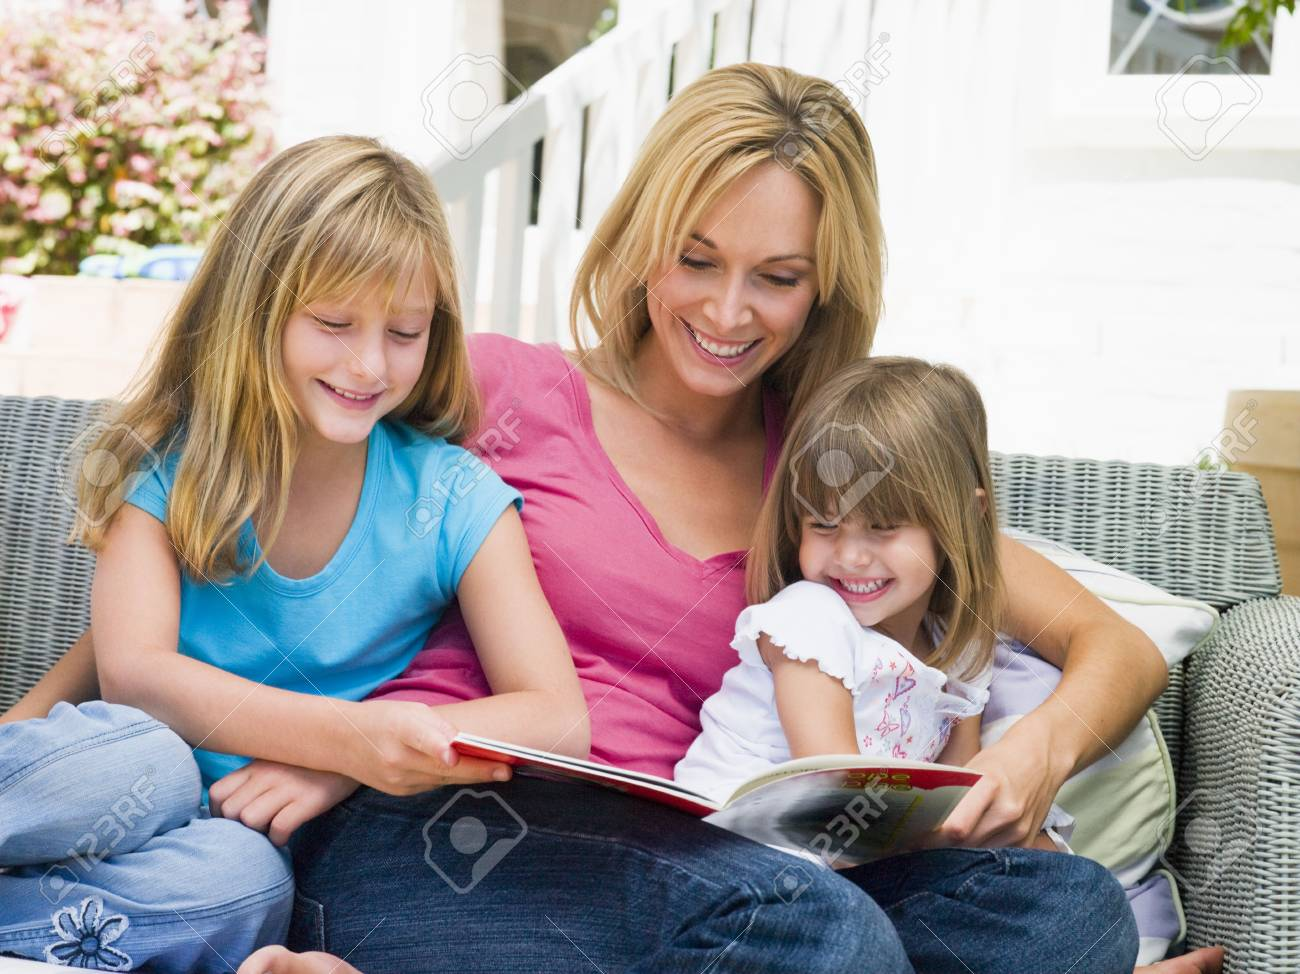 Woman and two young girls sitting on patio reading book smiling Stock Photo - 3475551